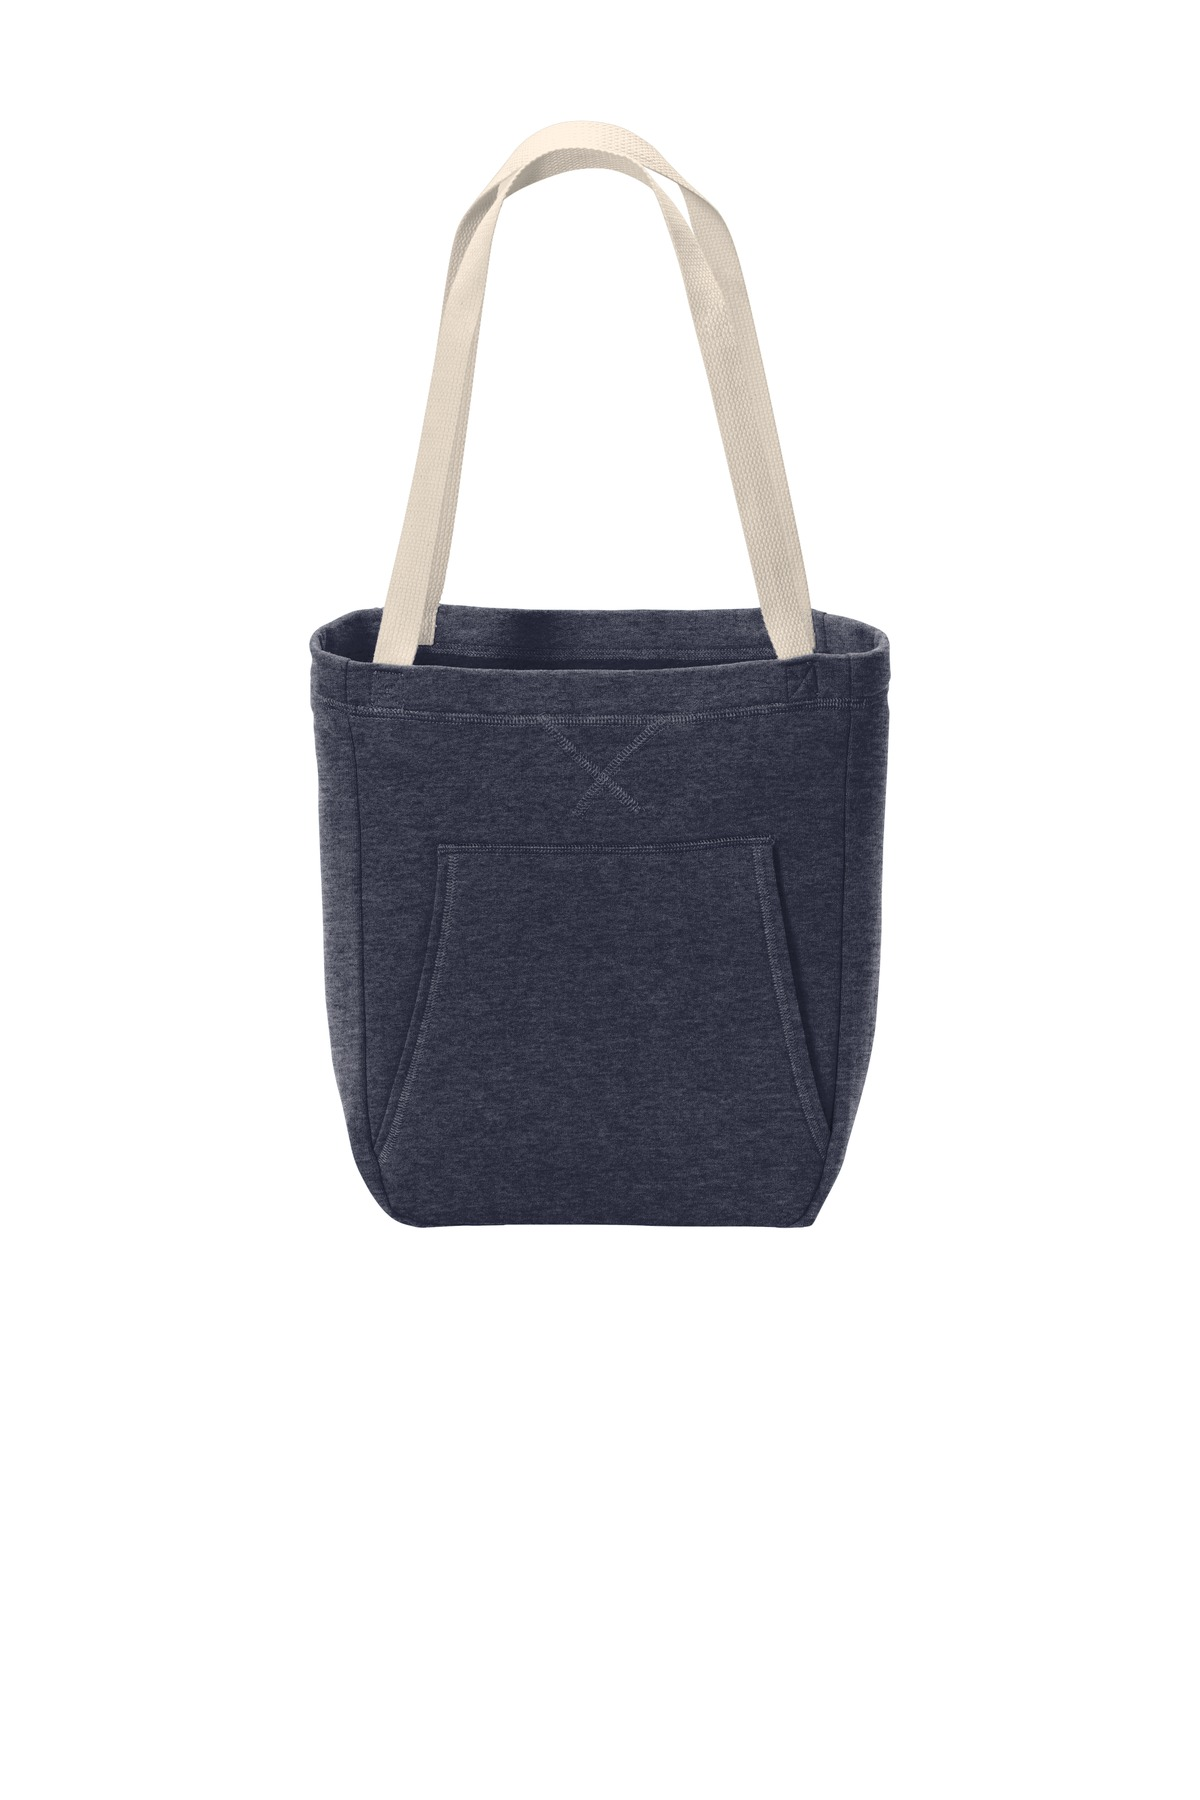 Port & Company  ®  Core Fleece Sweatshirt Tote BG415 - Heather Navy